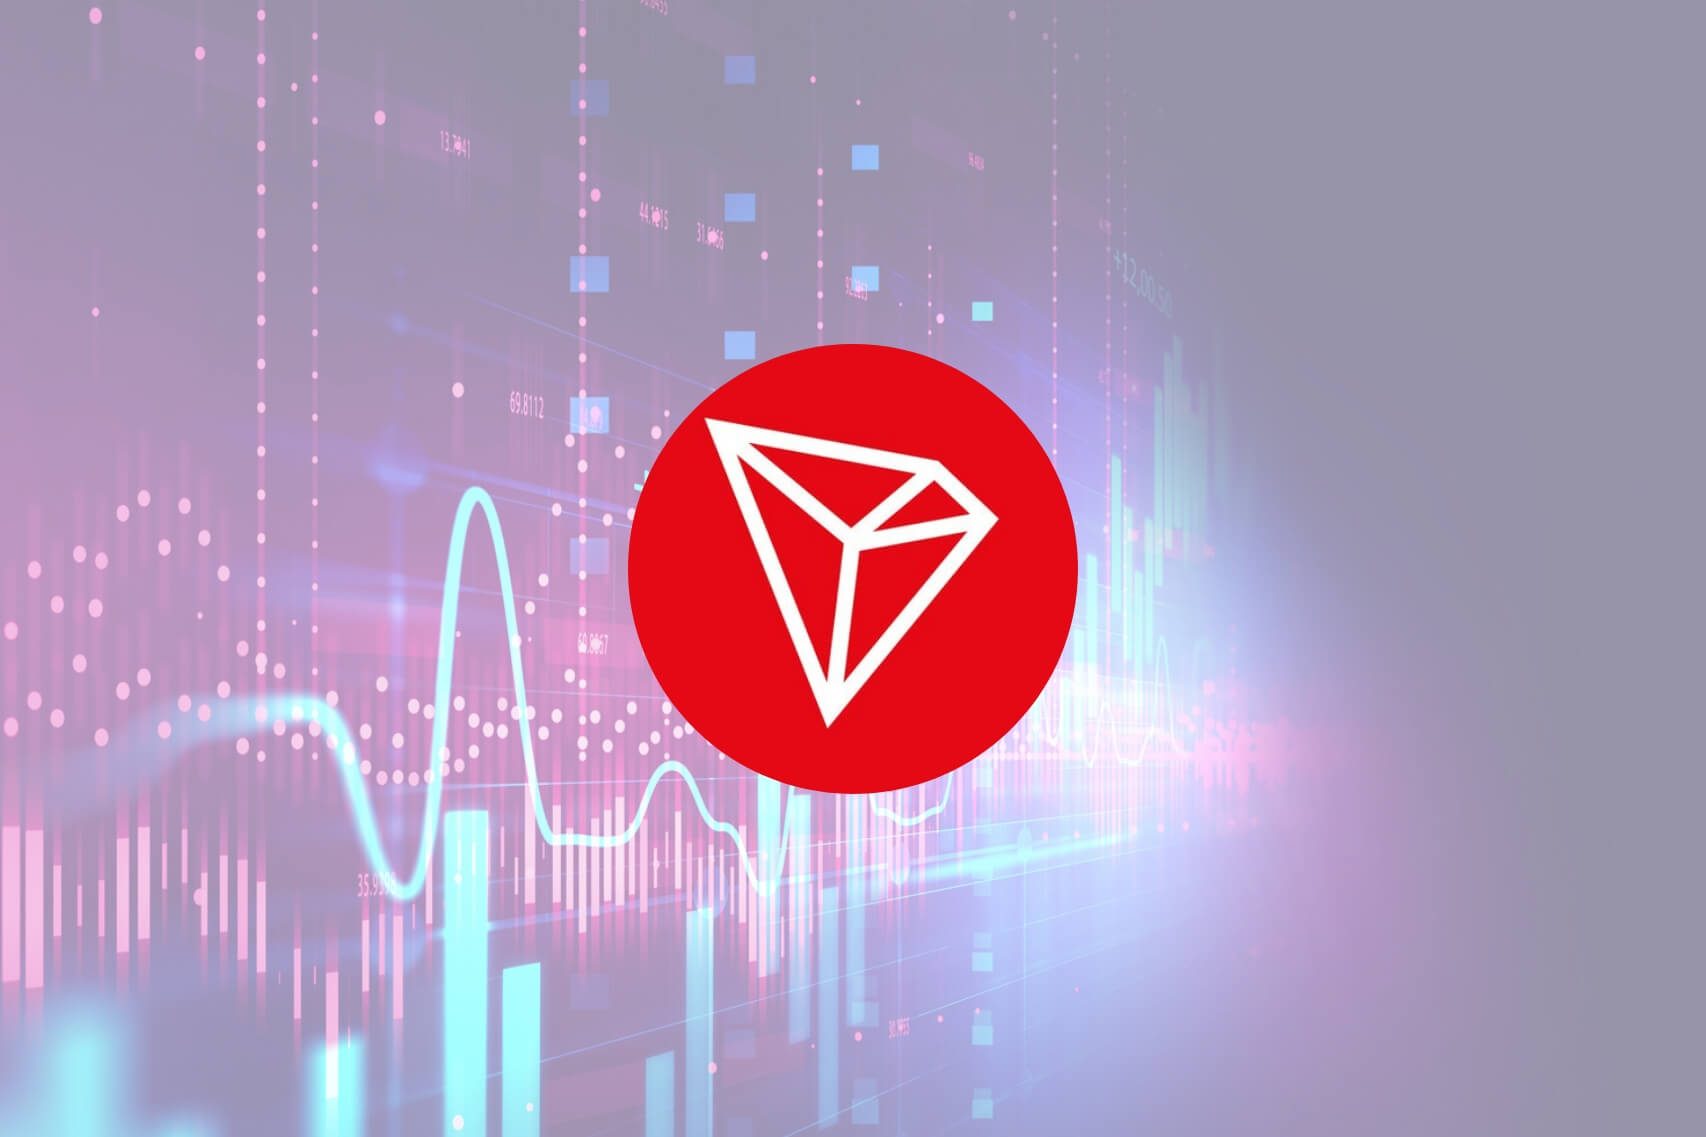 TRON Price Analysis: TRX Continues to Be the Strongest Performing Cryptocurrency in the Top 20 Over the Past Month